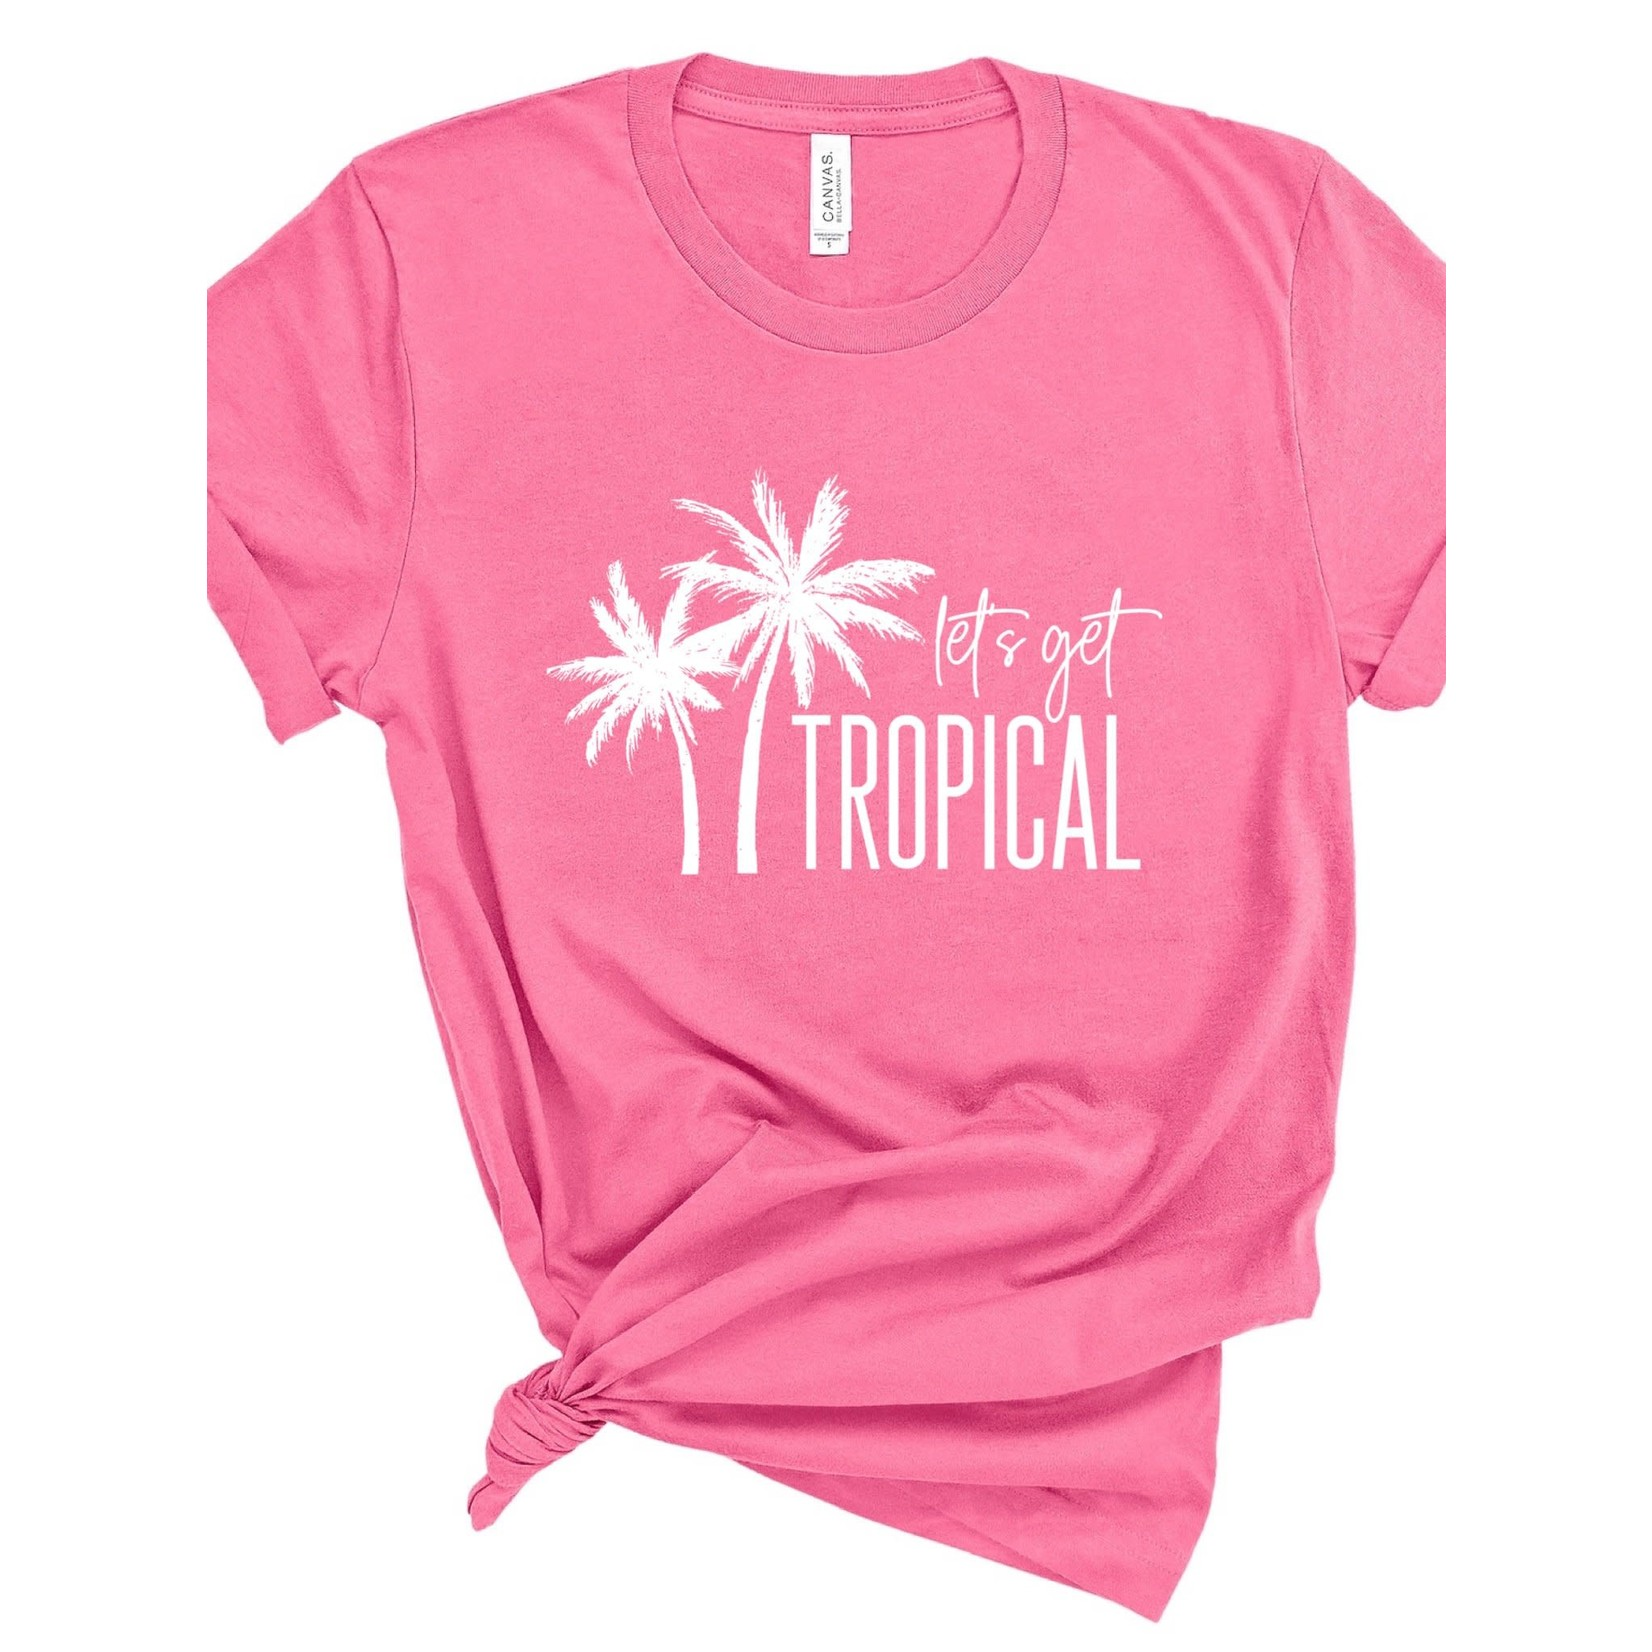 Type A Tees Let's Get Tropical Tee